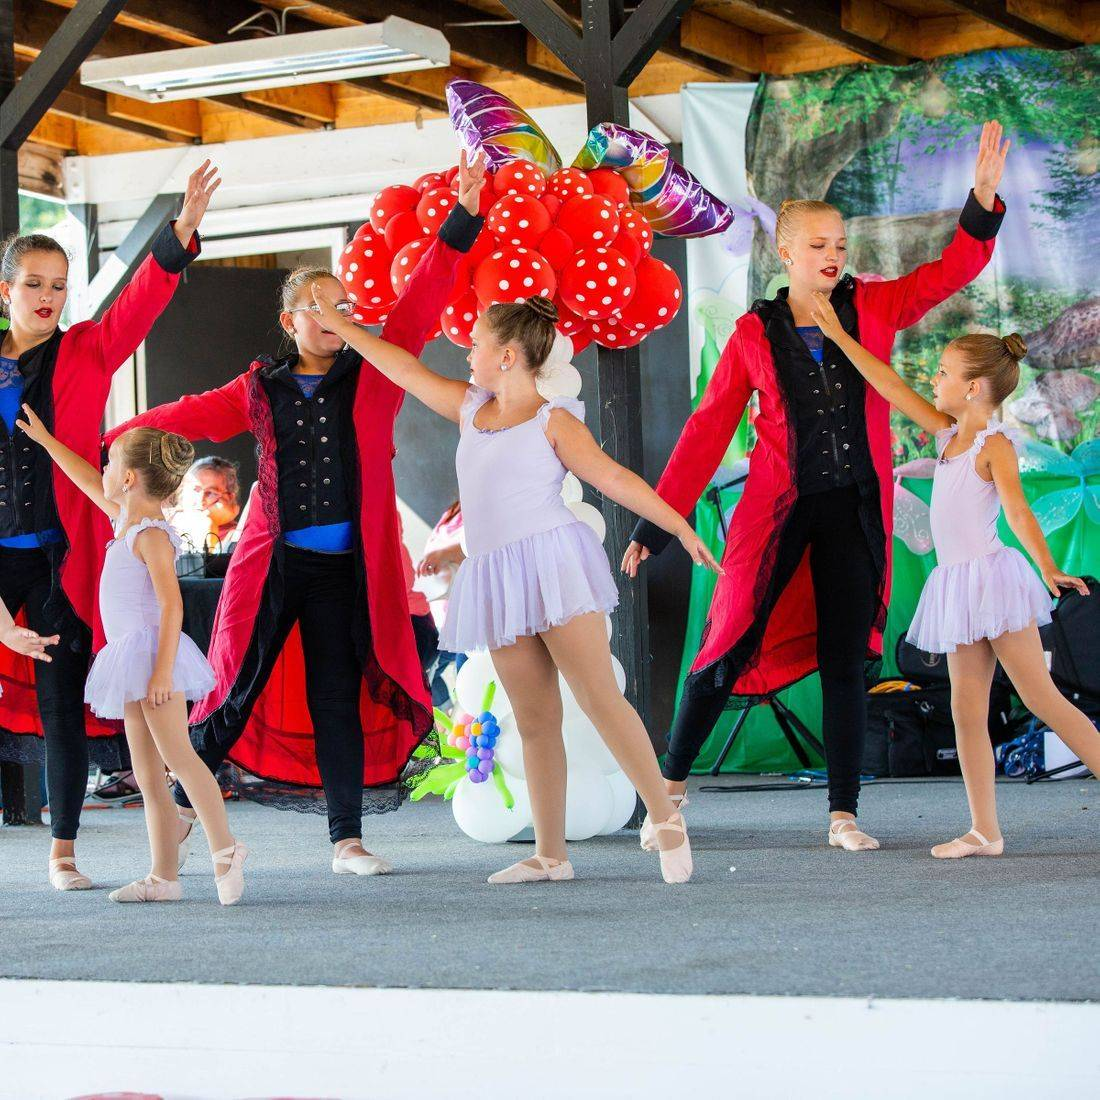 Fairy Dancing, Creative Expression, Dancing